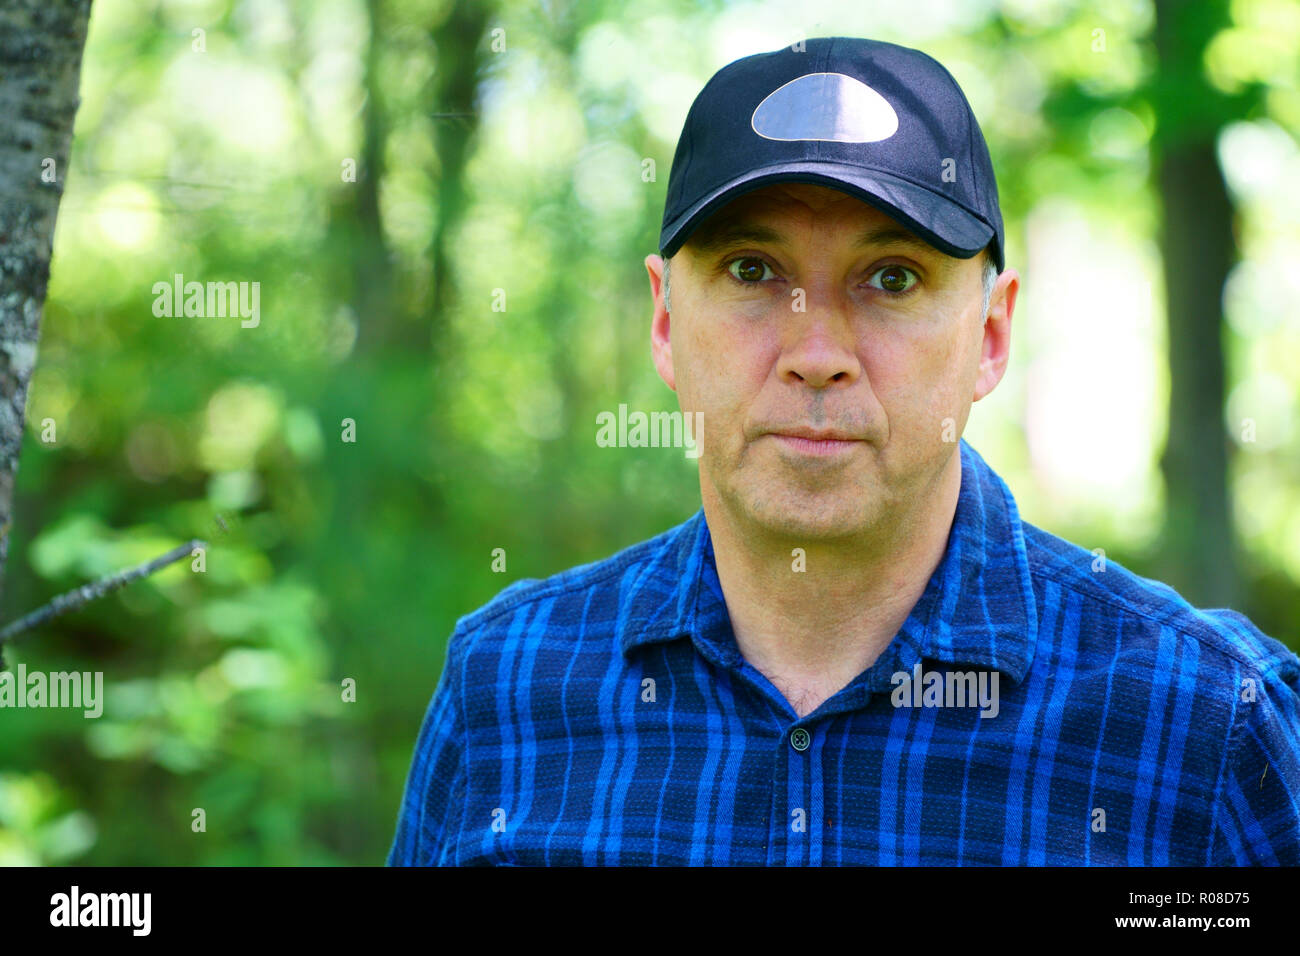 A caucasian serious man is looking into the camera for a portrait while hiking in the forest wearing a blue check shirt and a black hat. - Stock Image